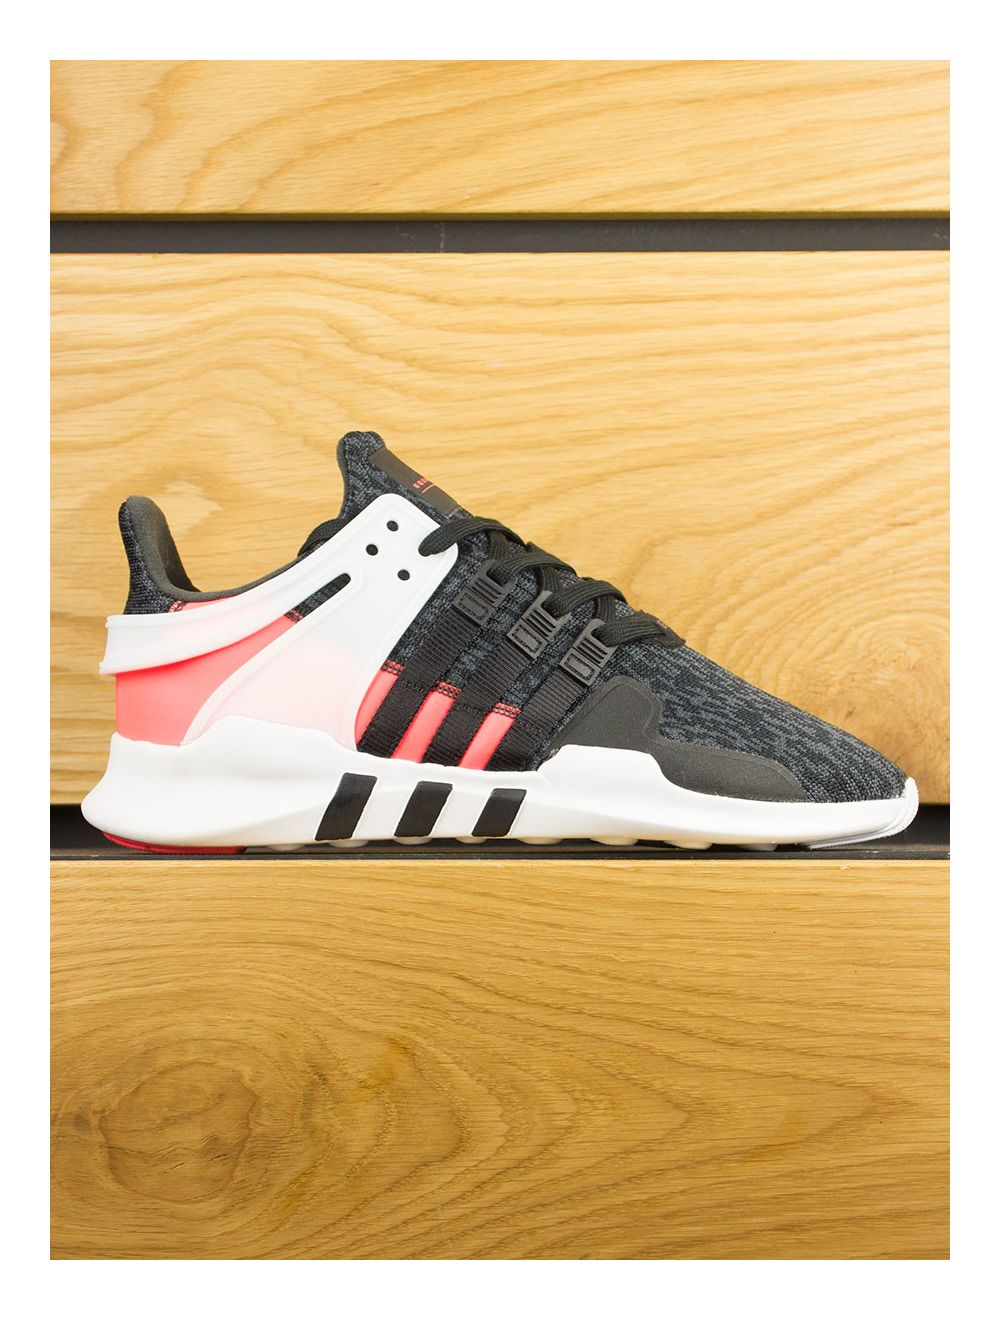 lowest price 43e79 d5092 Adidas EQT Support ADV 91/16 - Black Turbo Red